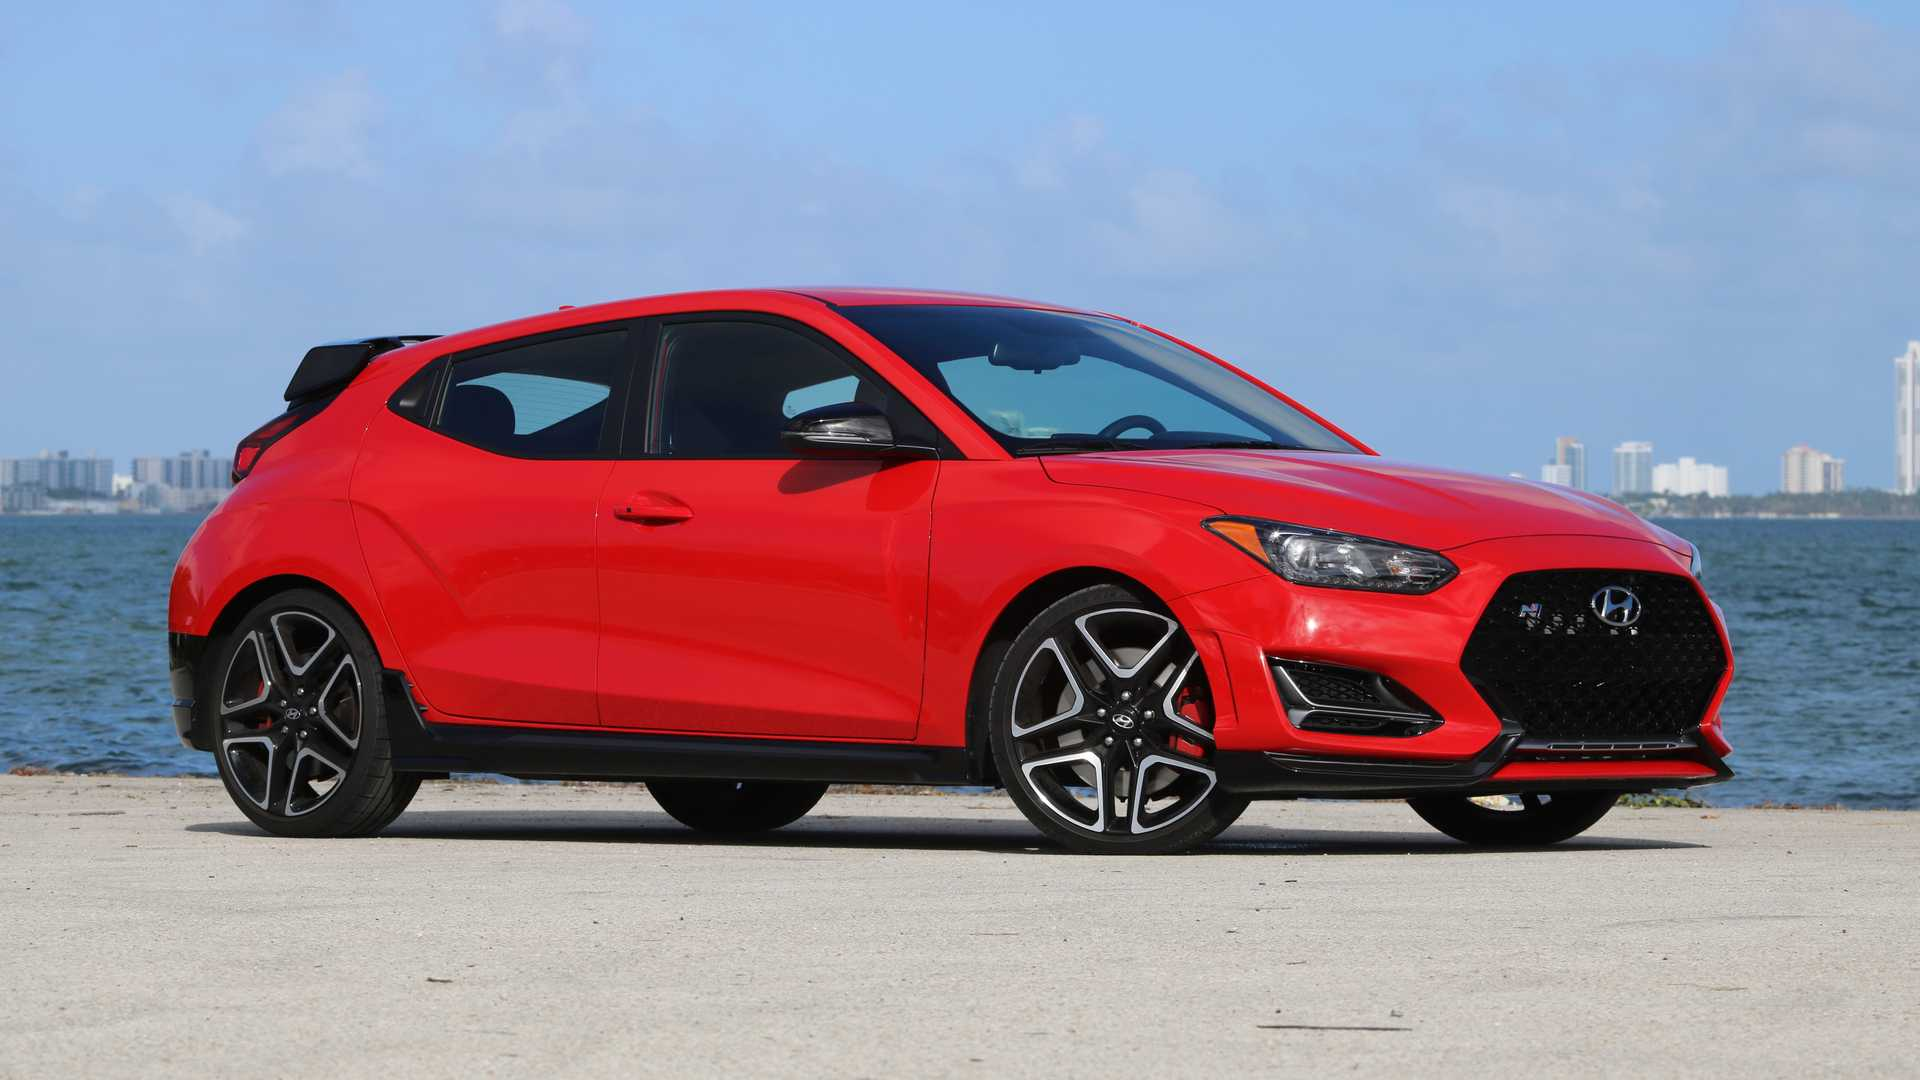 2019 Hyundai Veloster N Review: N-Sync With Its Performance Side